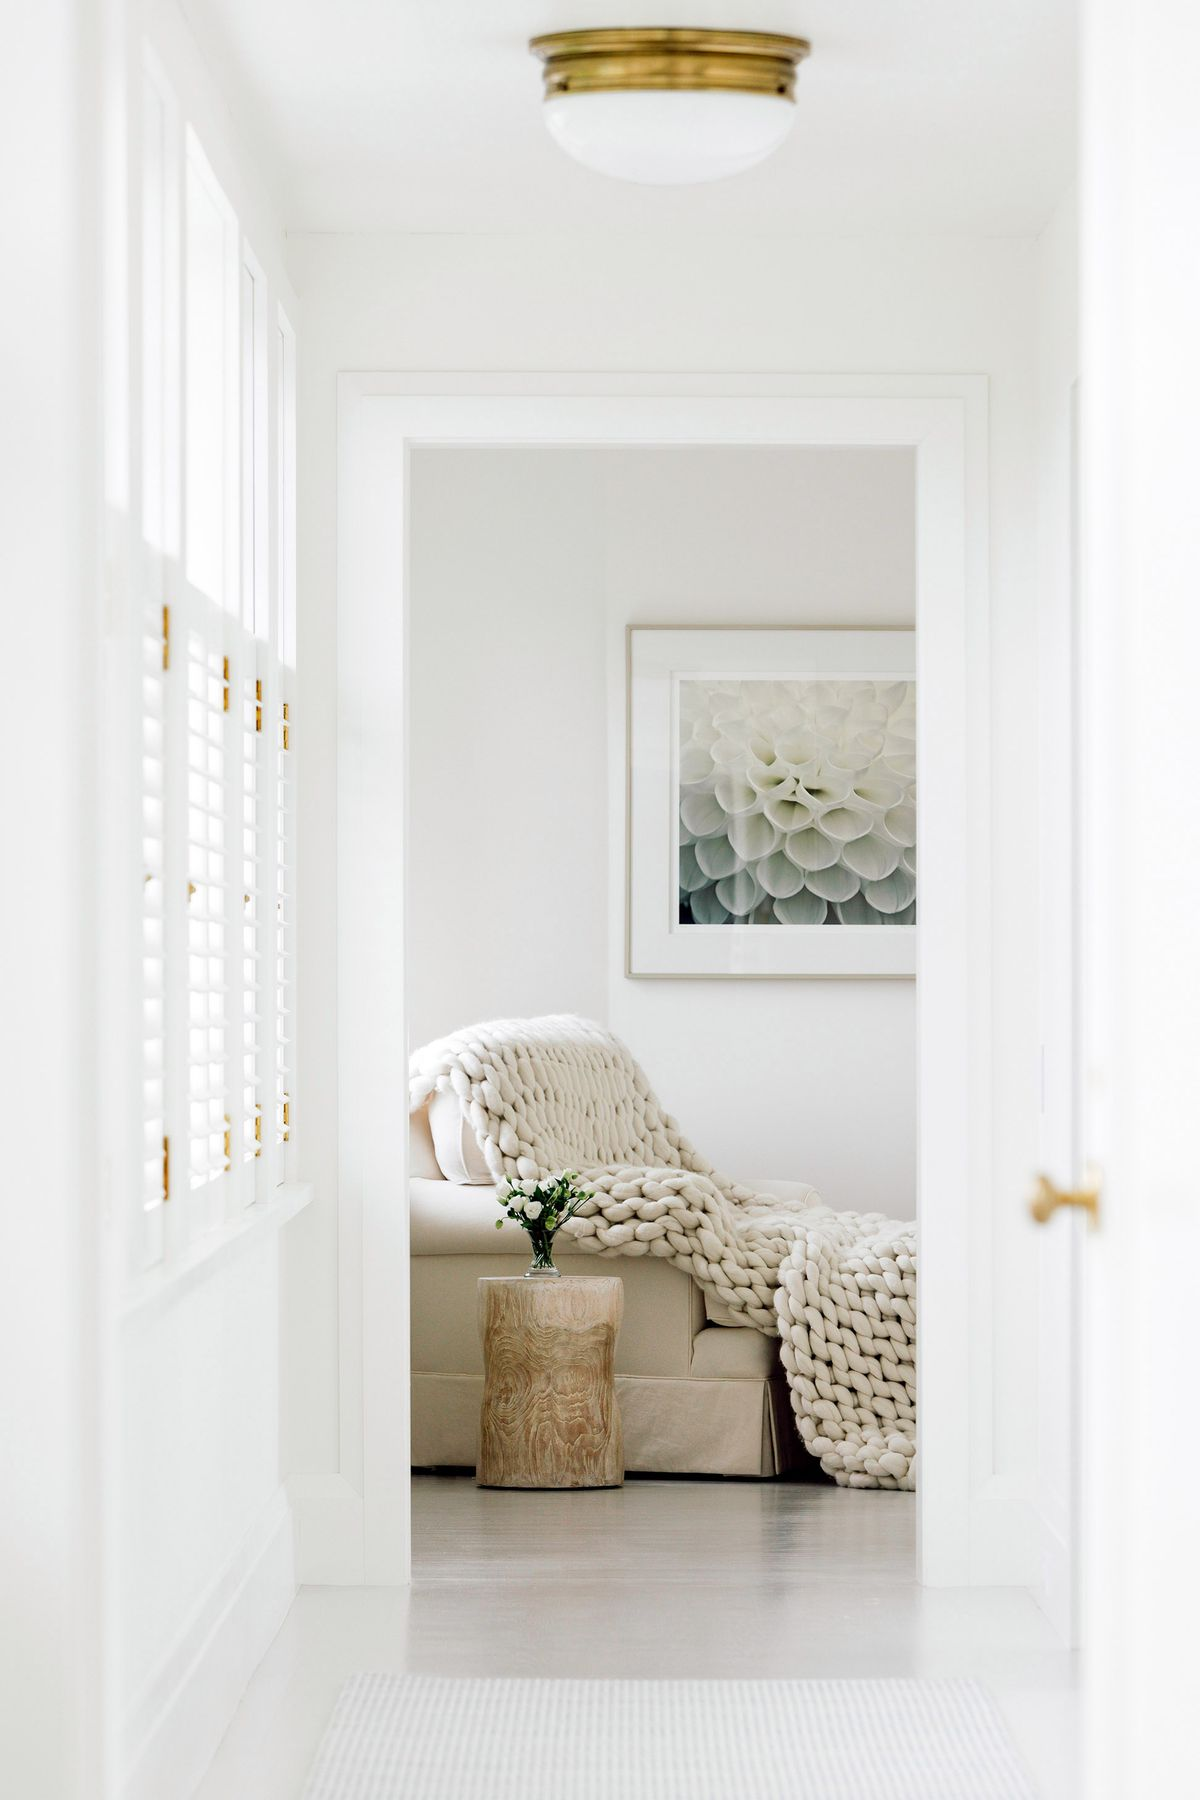 A room at the end of a long white hallway with a white sofa, chunky white blanket, and natural wood stump occasional table.